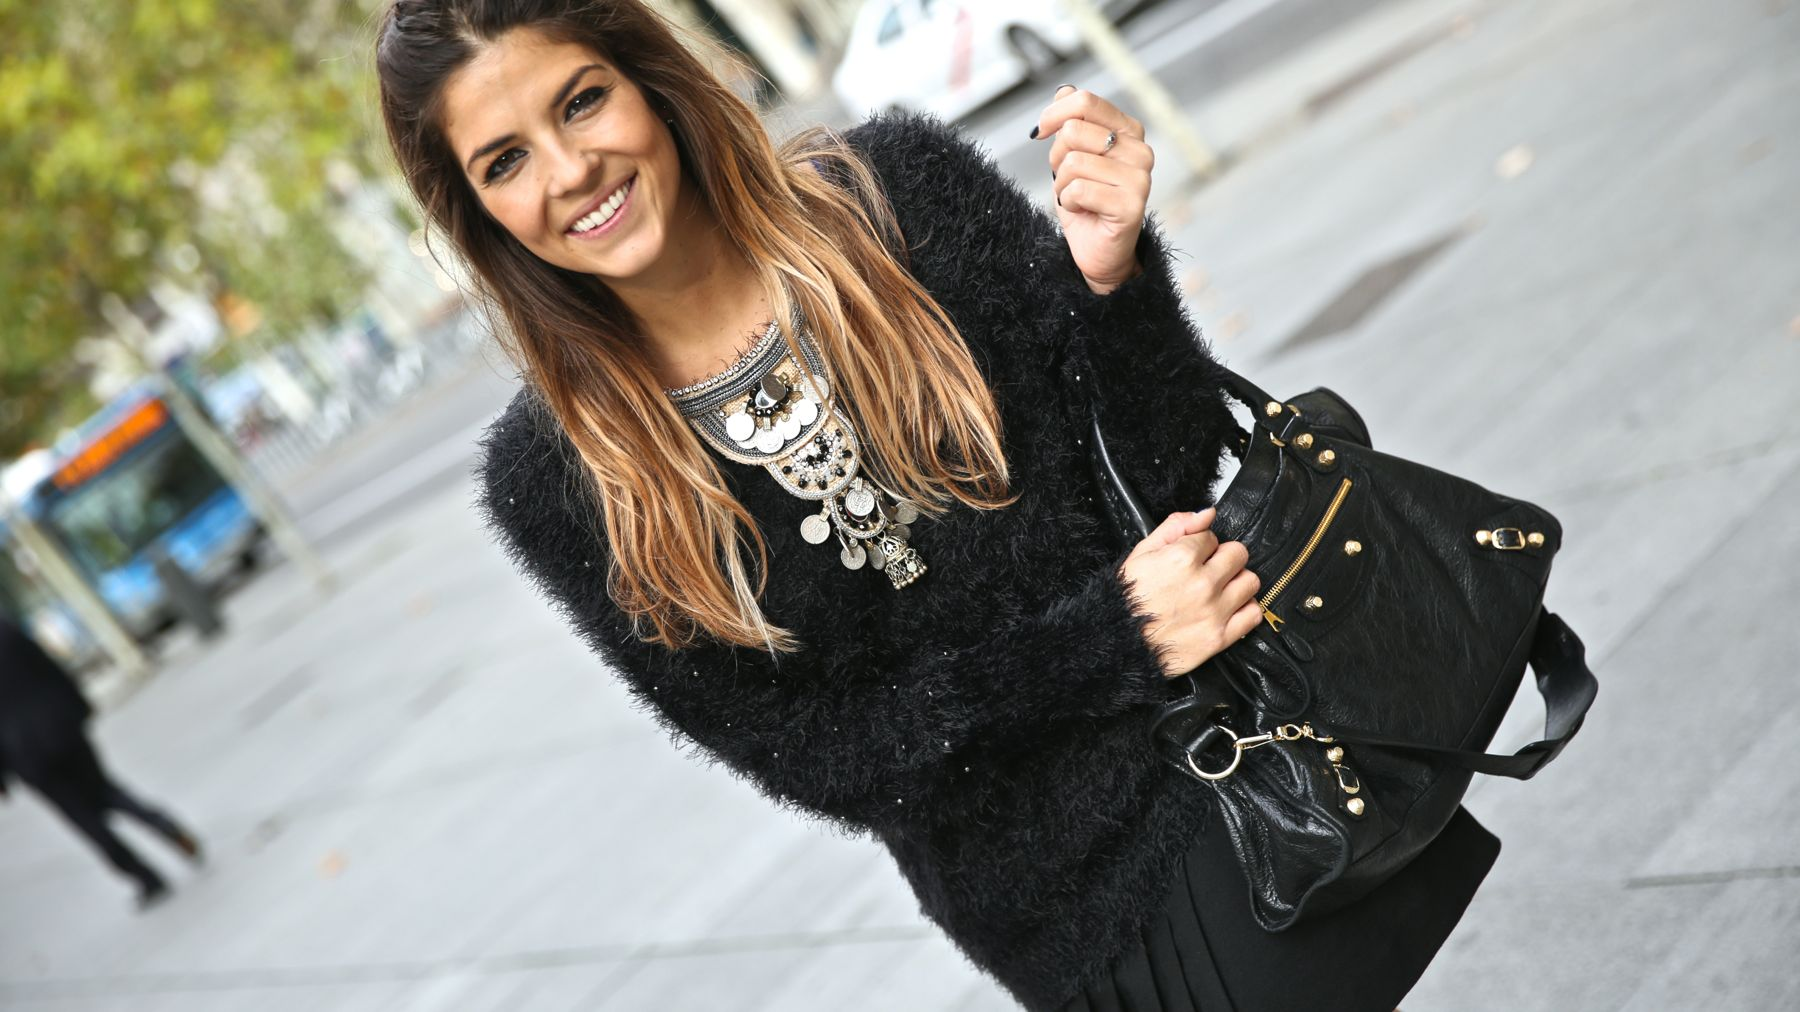 trendy_taste-look-outfit-street_style-ootd-blog-blogger-fashion_spain-moda_españa-balenciaga-city_bag-steve_madden-jersey_pelo-furry_sweater-collar-necklace-skirt-falda_negra-6